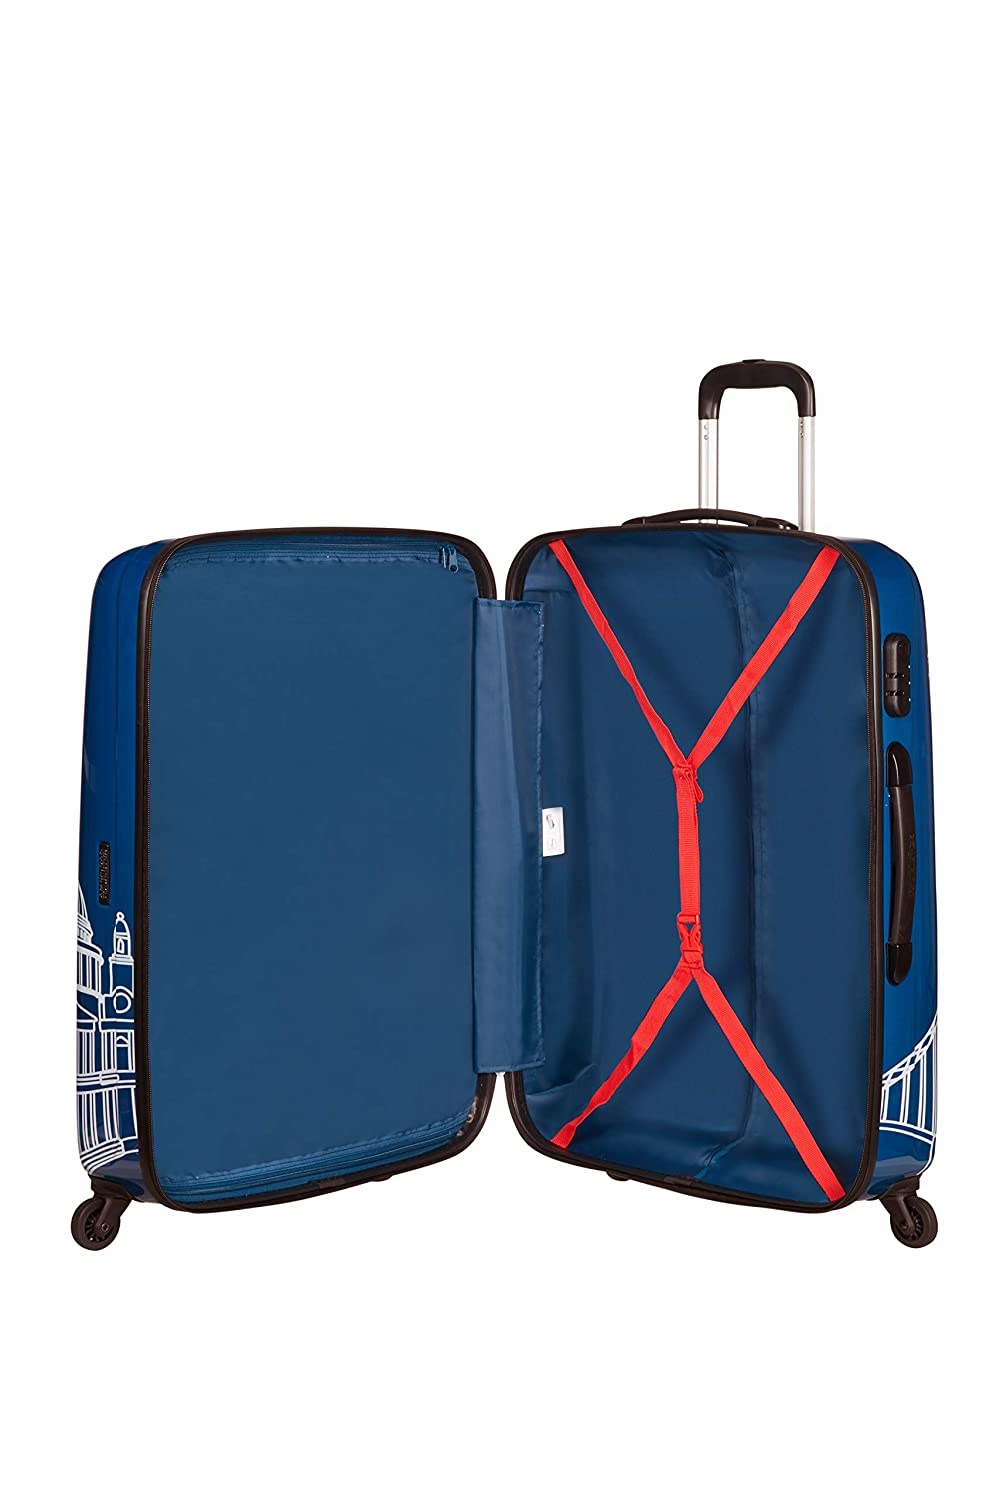 Blu 75 cm Spinner Large Alfatwist Bagaglio a mano 88 liters Mickey London American Tourister Disney Legends